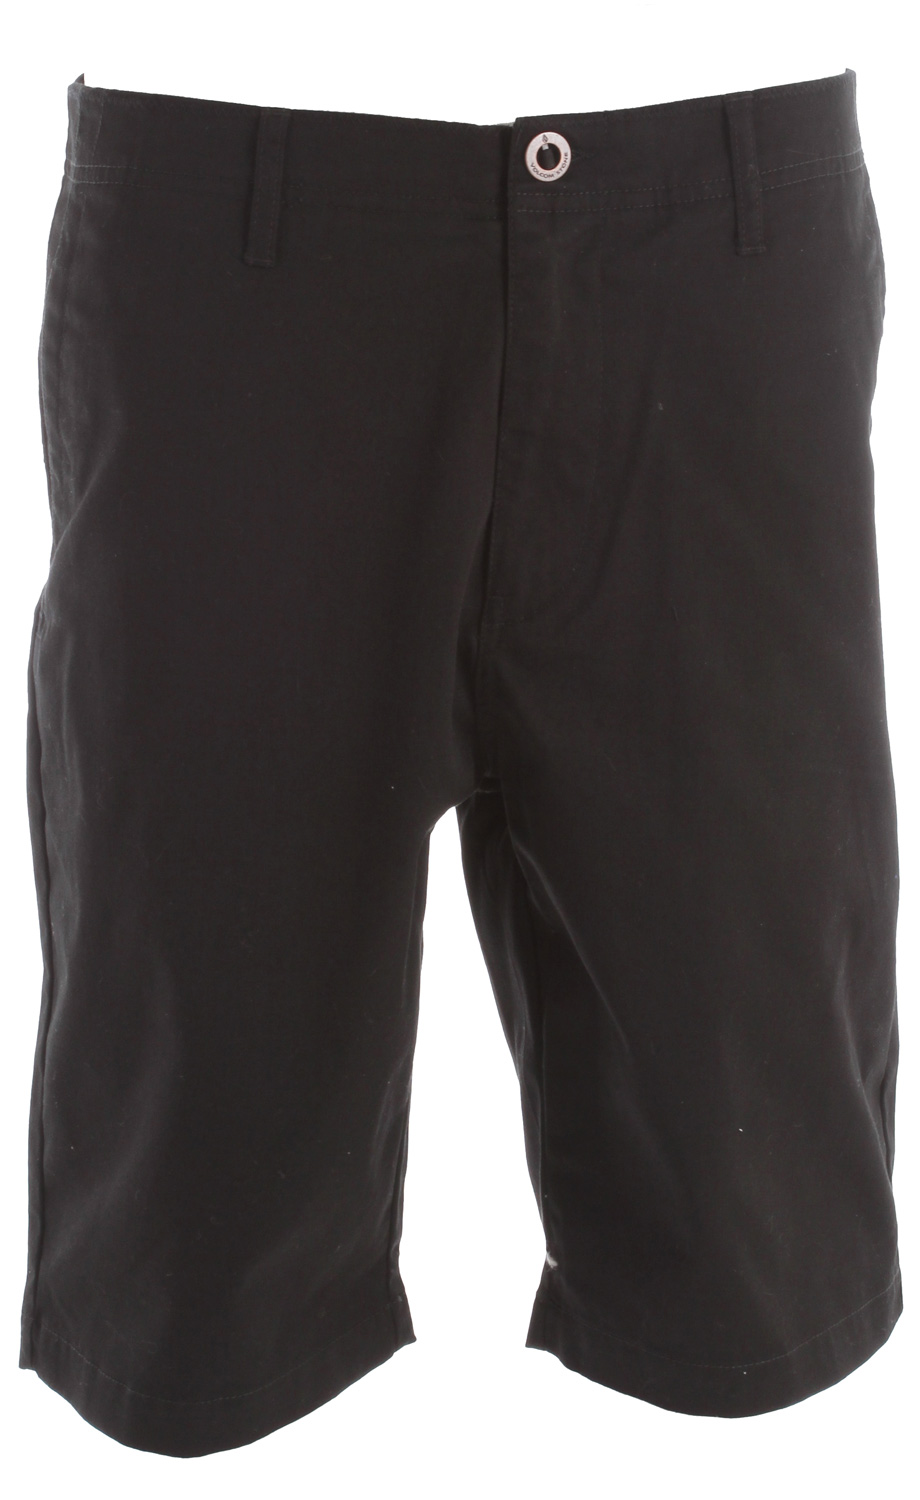 "Surf Key Features of the Volcom Fairmondo Shorts: 22"" outseam Relaxed fit chino short Patch back pockets Pre-laundered 60% cotton/40% polyester twill - $24.95"